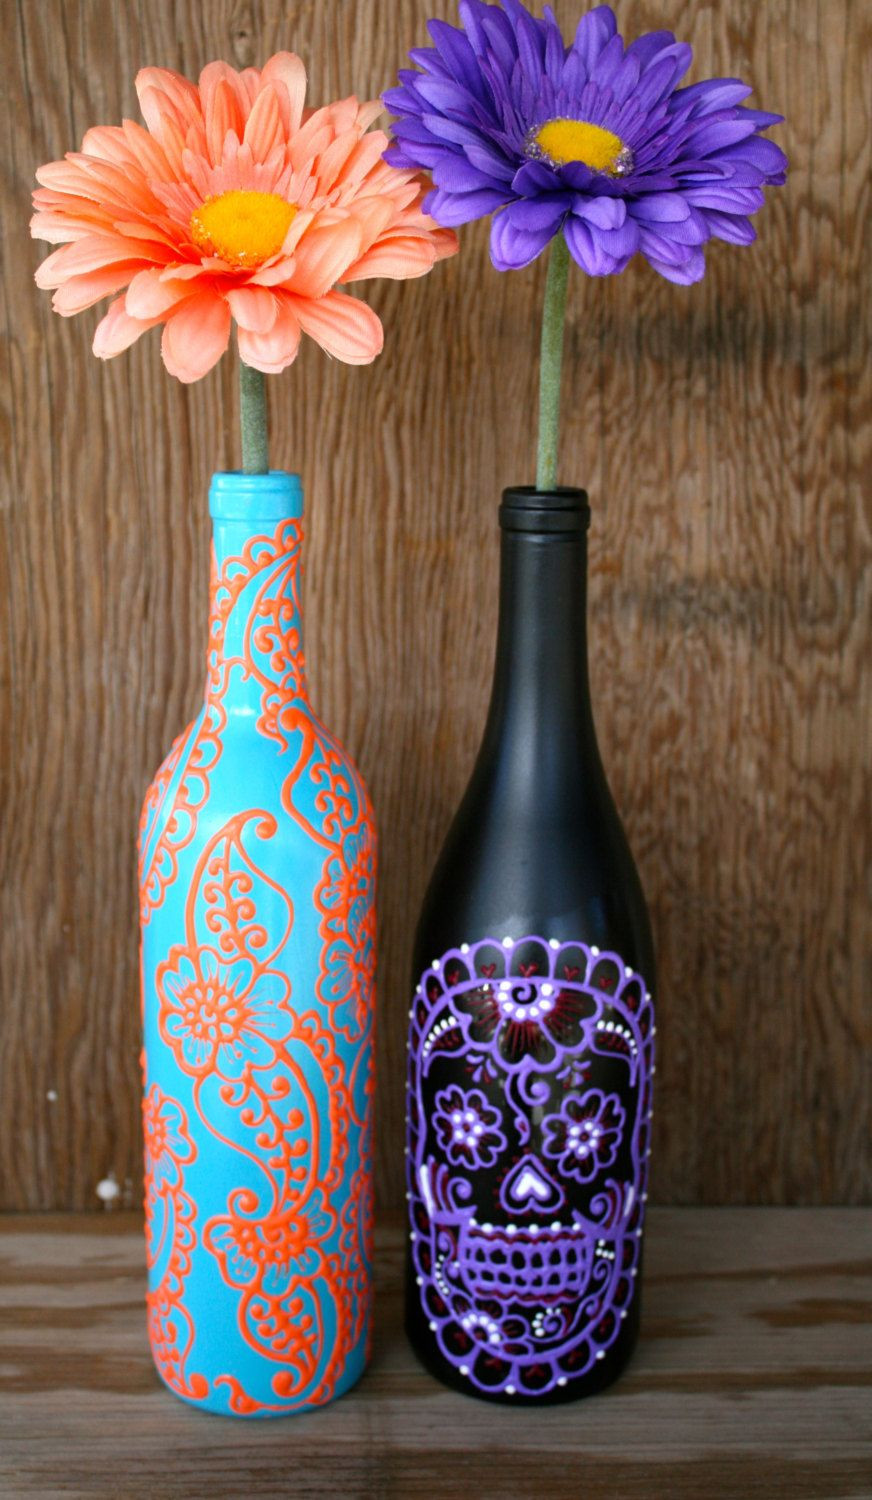 Small Glass Bottle Vases Of Hand Painted Wine Bottle Vase Up Cycled Turquoise and Coral orange for Hand Painted Wine Bottle Vase Up Cycled Turquoise and Coral orange Vibrant Henna Style Design 25 00 Via Etsy